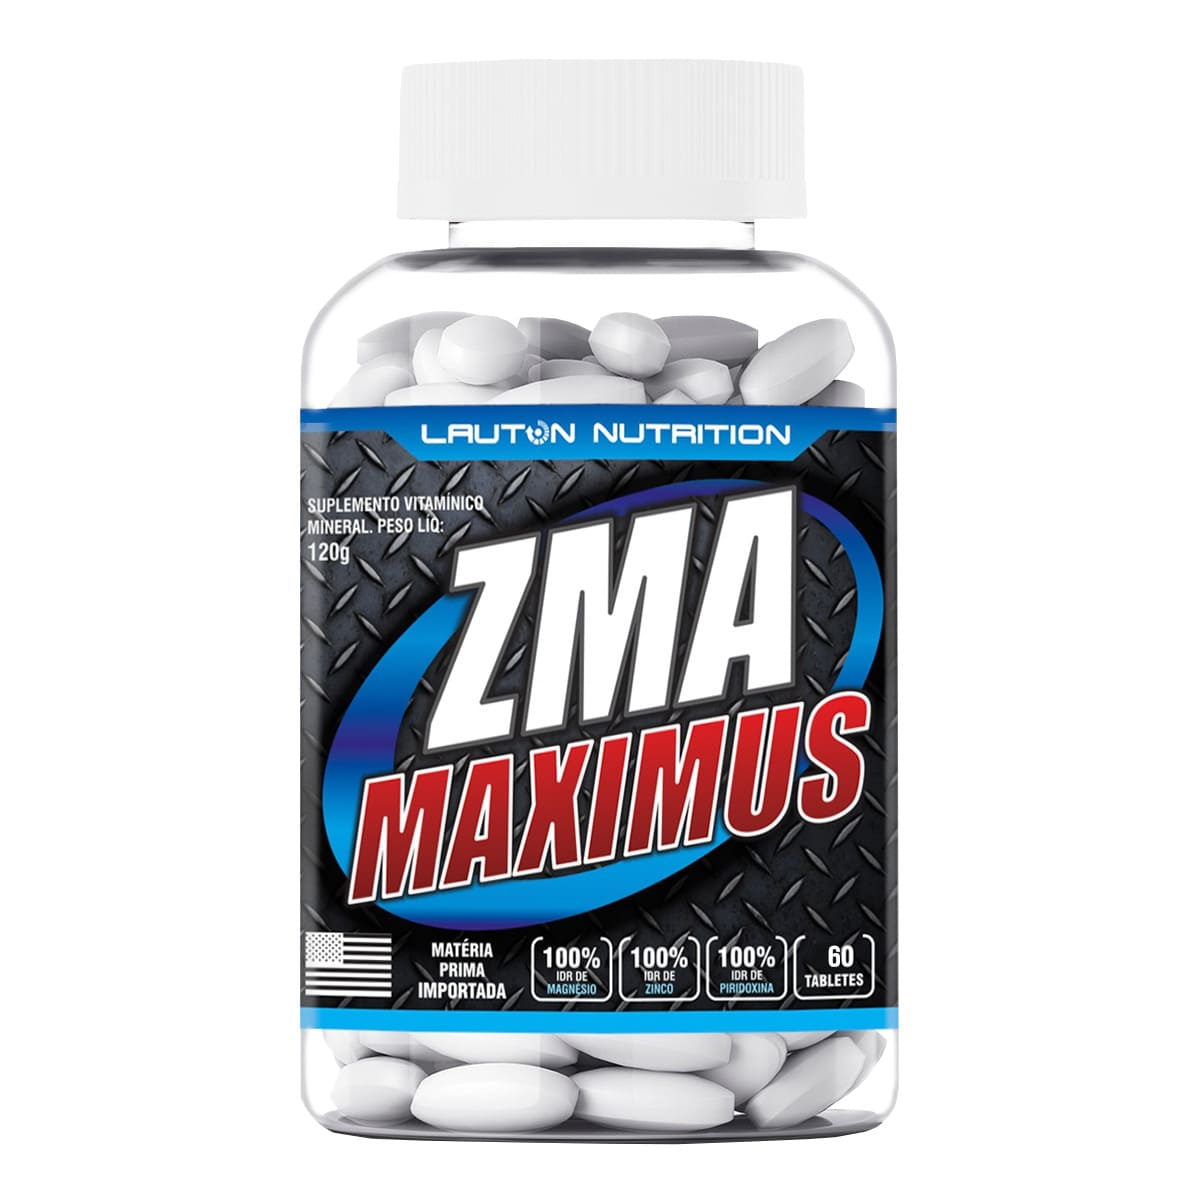 ZMA Maximus Lauton Nutrition - 60 Tablets 1G